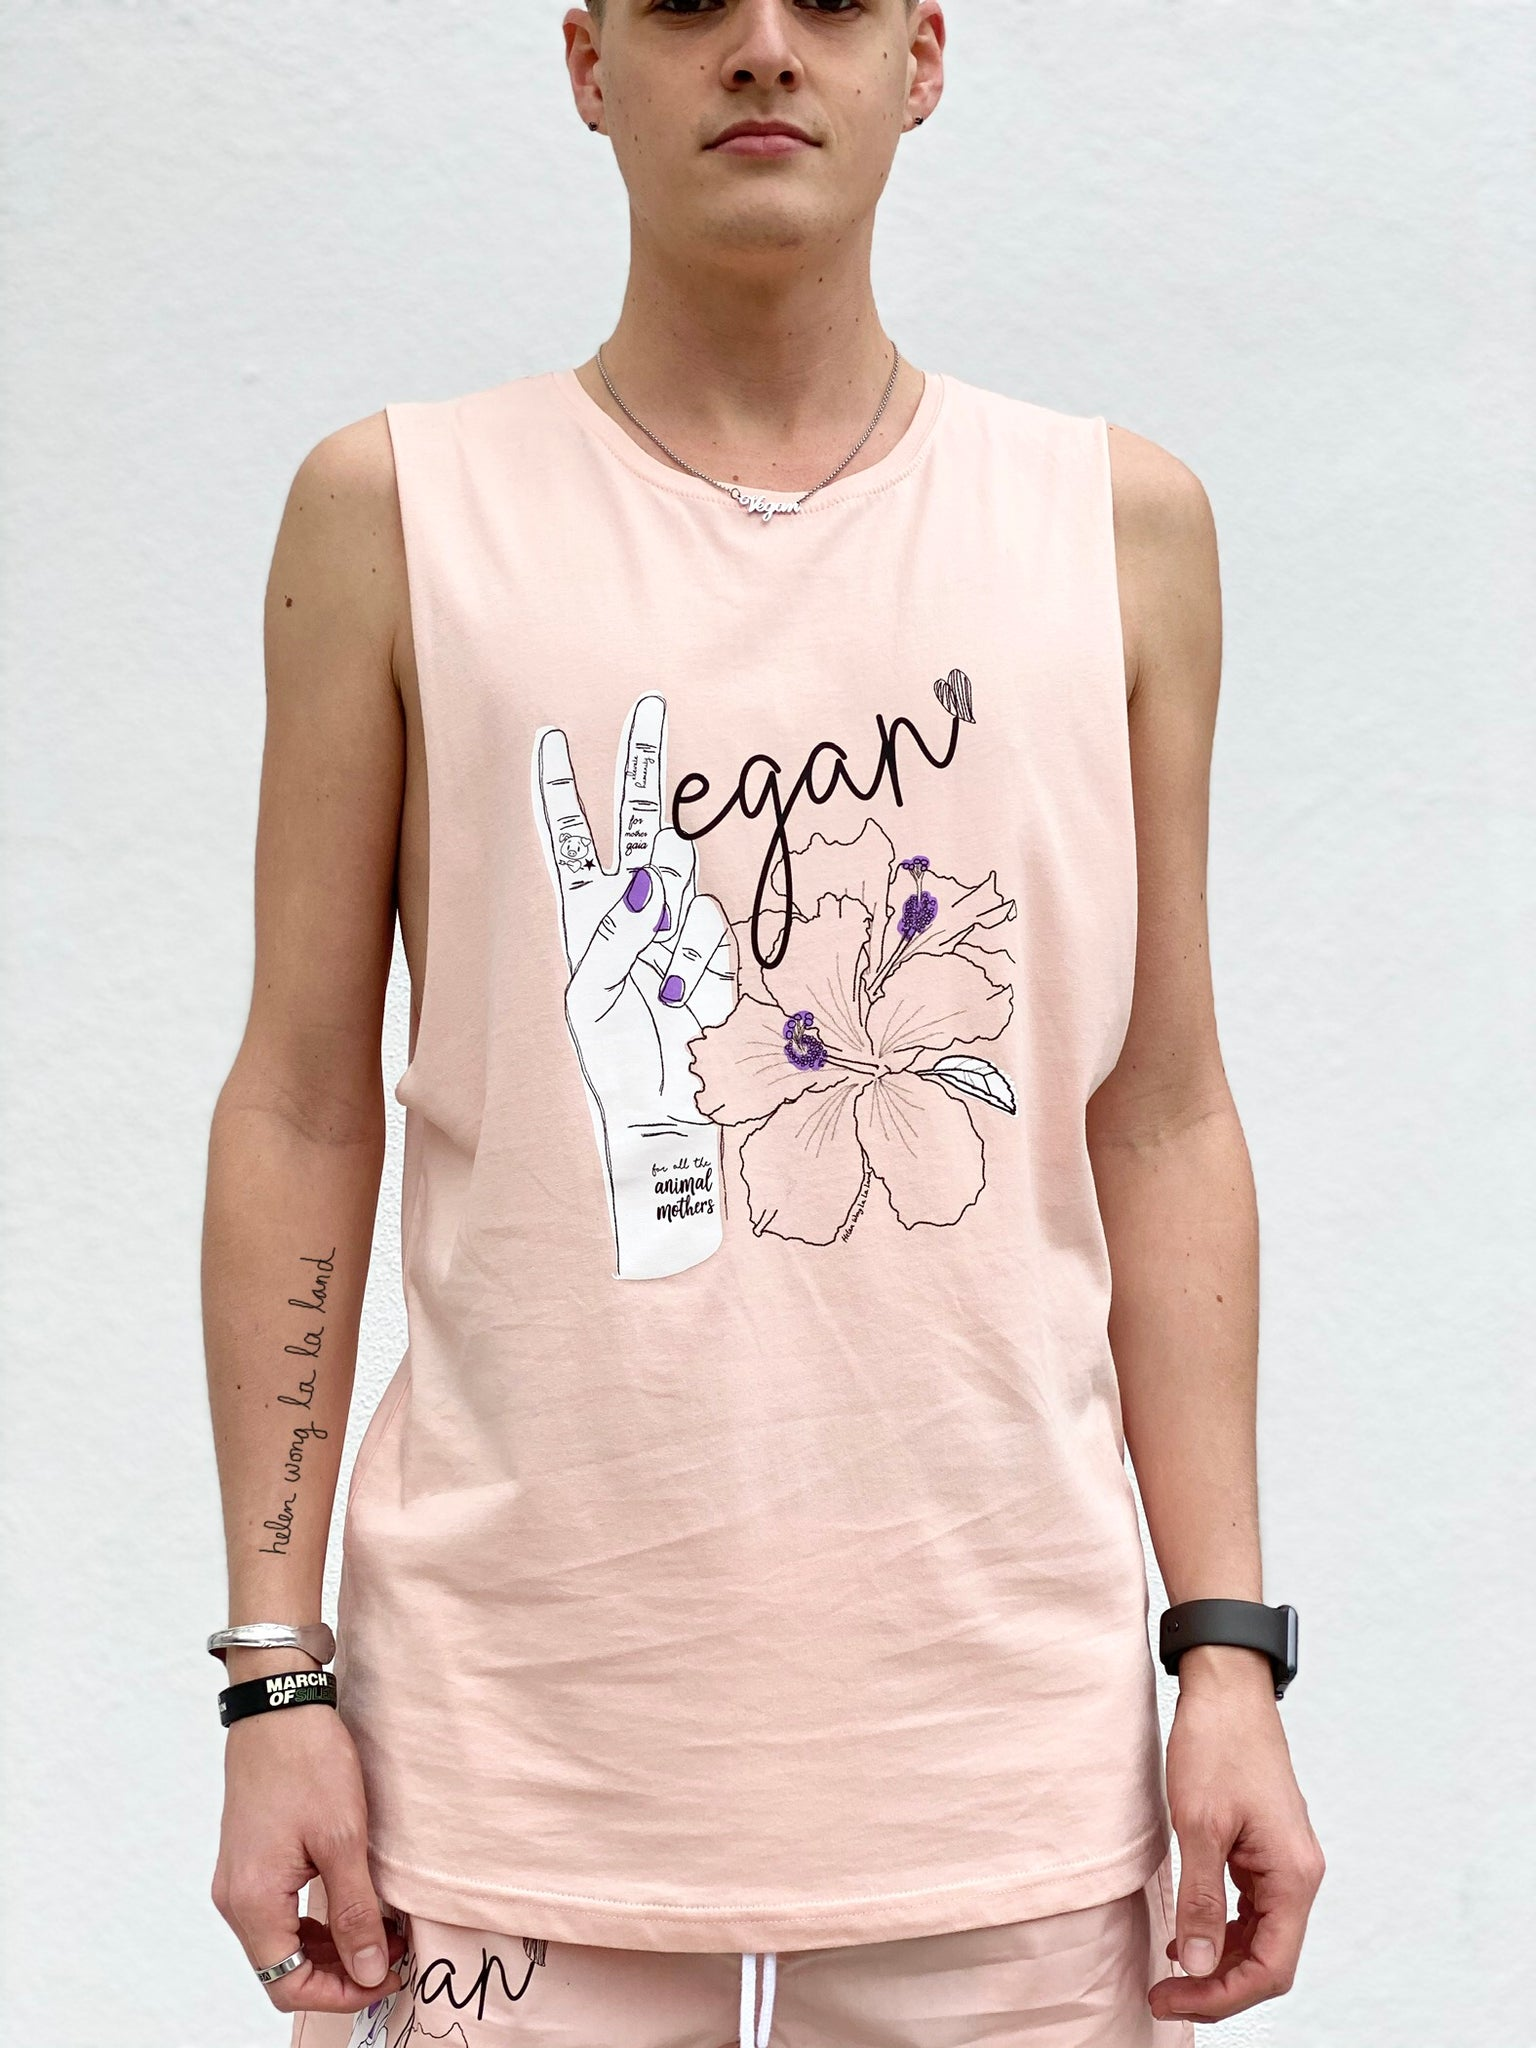 (S/S 2020) ✌🏼Vegan Hawaii sleeveless tee in PALE CORAL PINK m